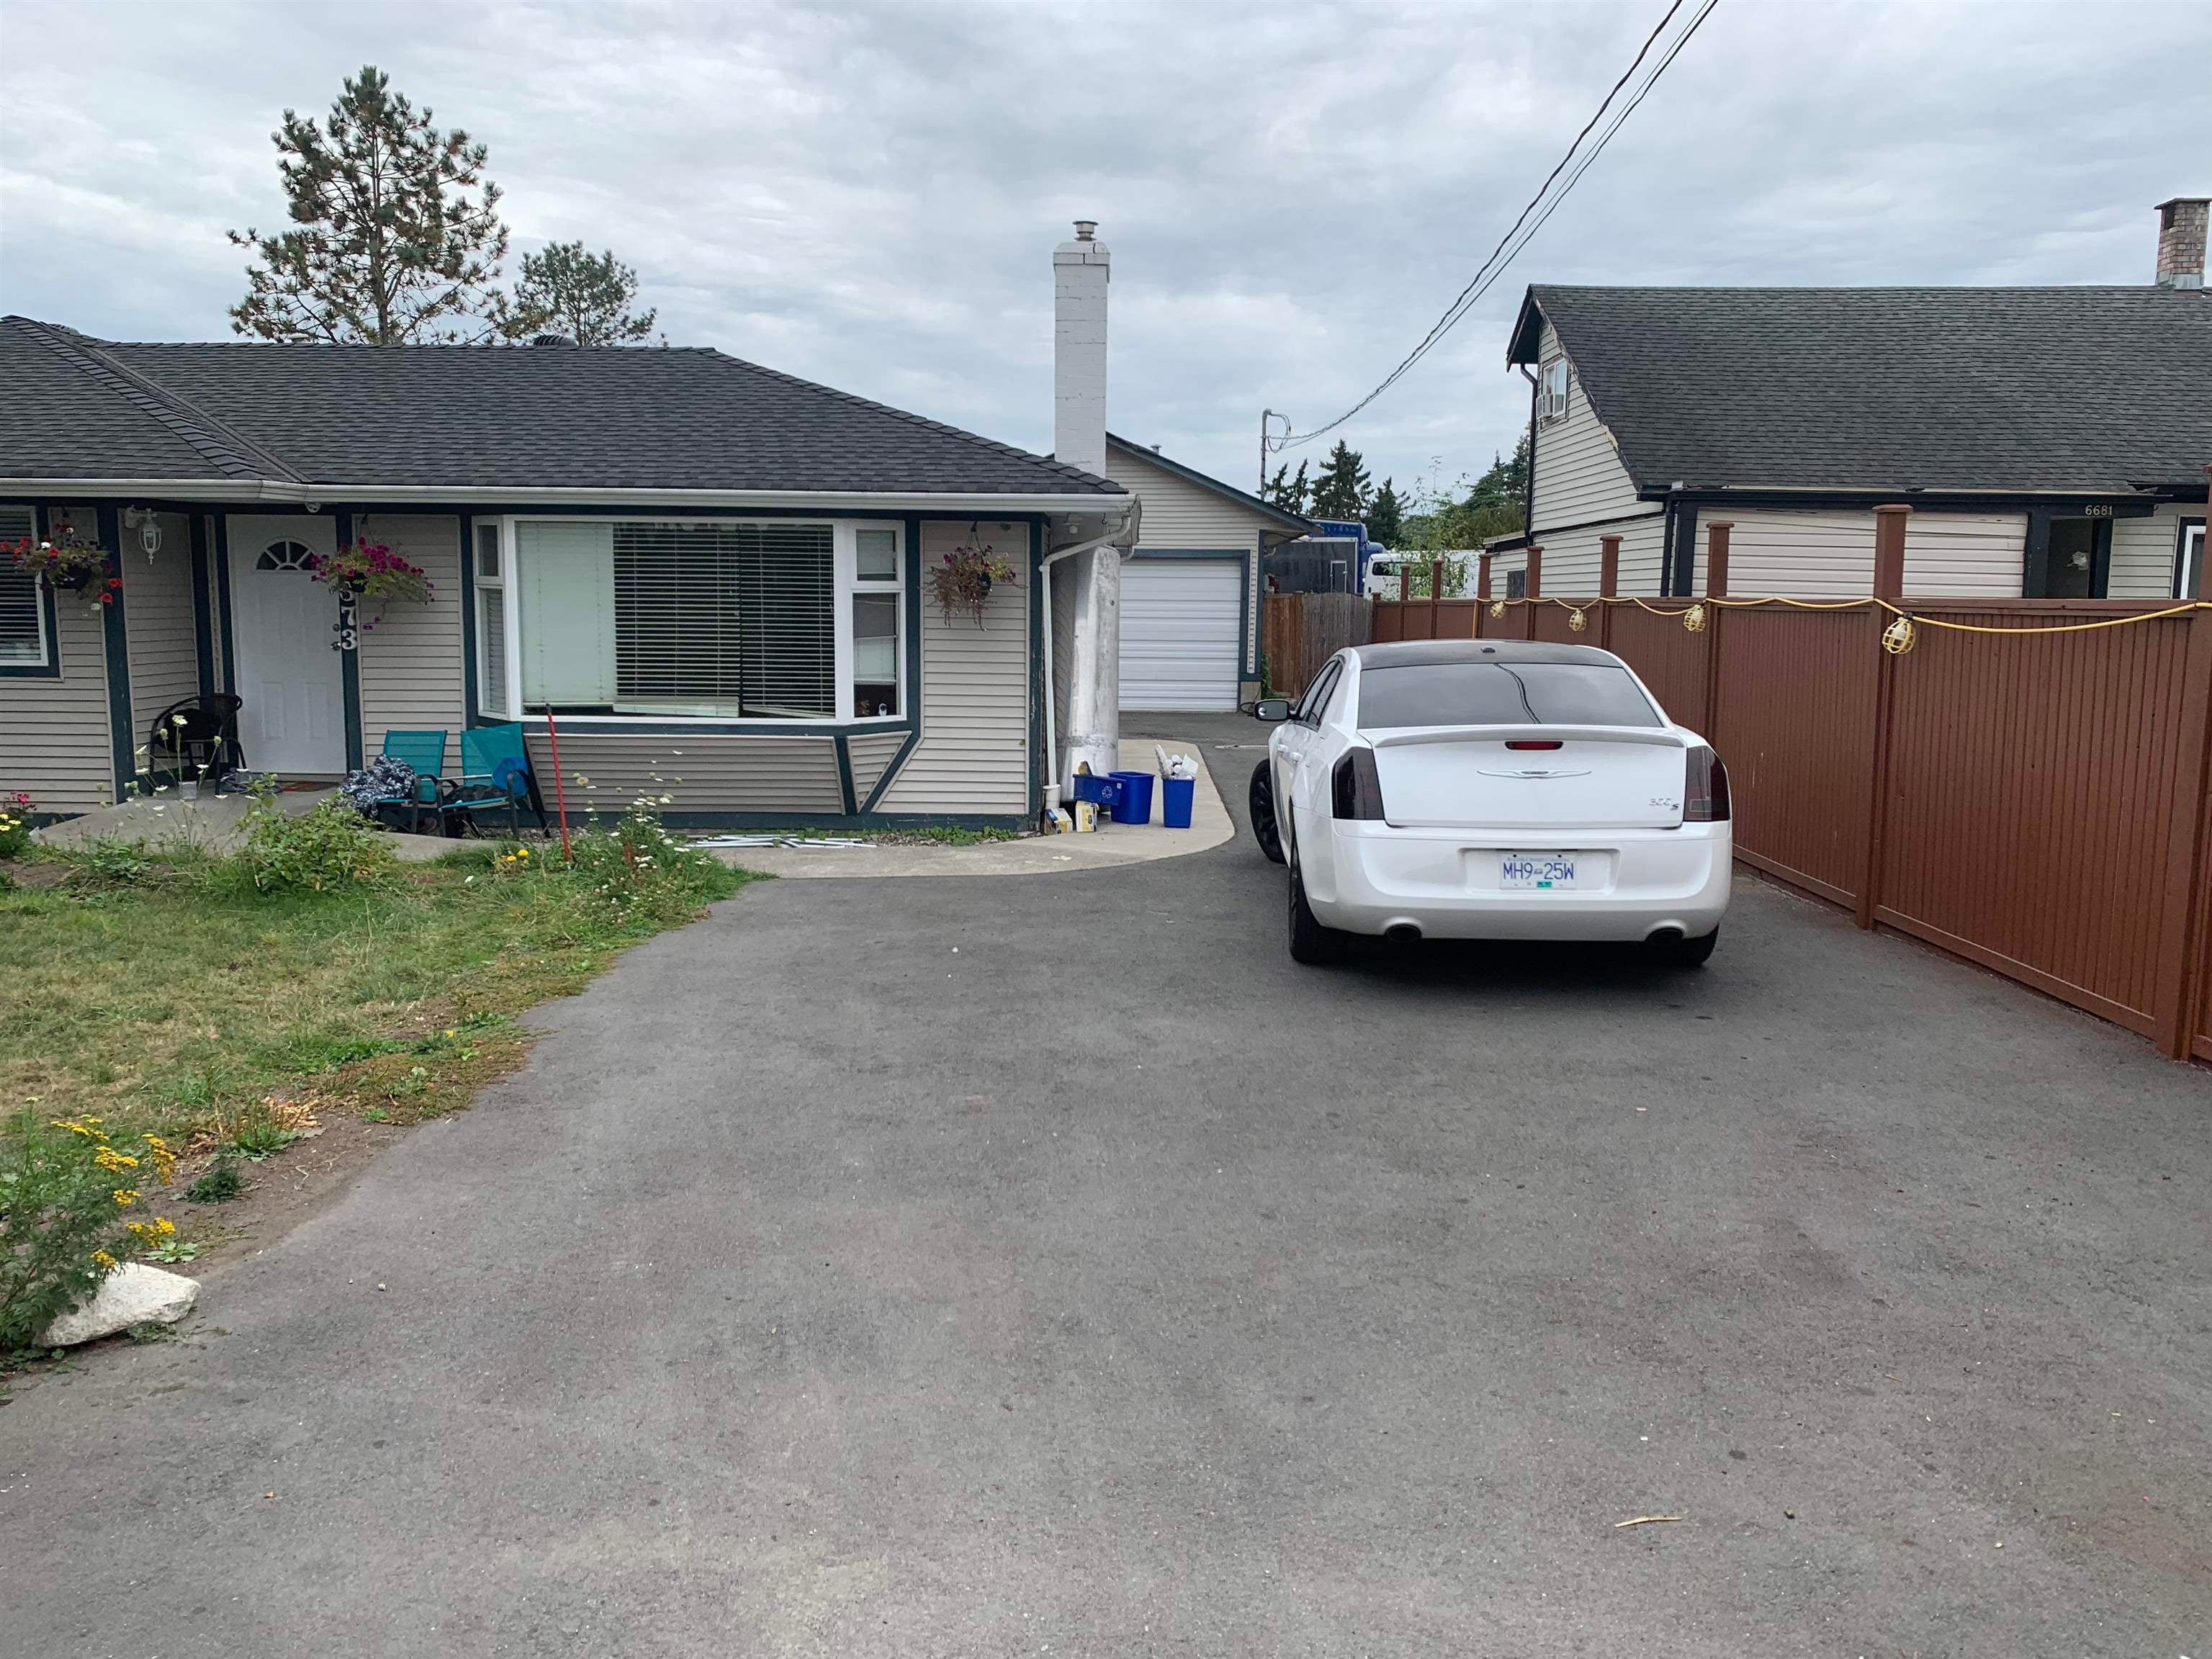 6673 216 STREET - Salmon River House/Single Family for sale, 5 Bedrooms (R2614334) - #1